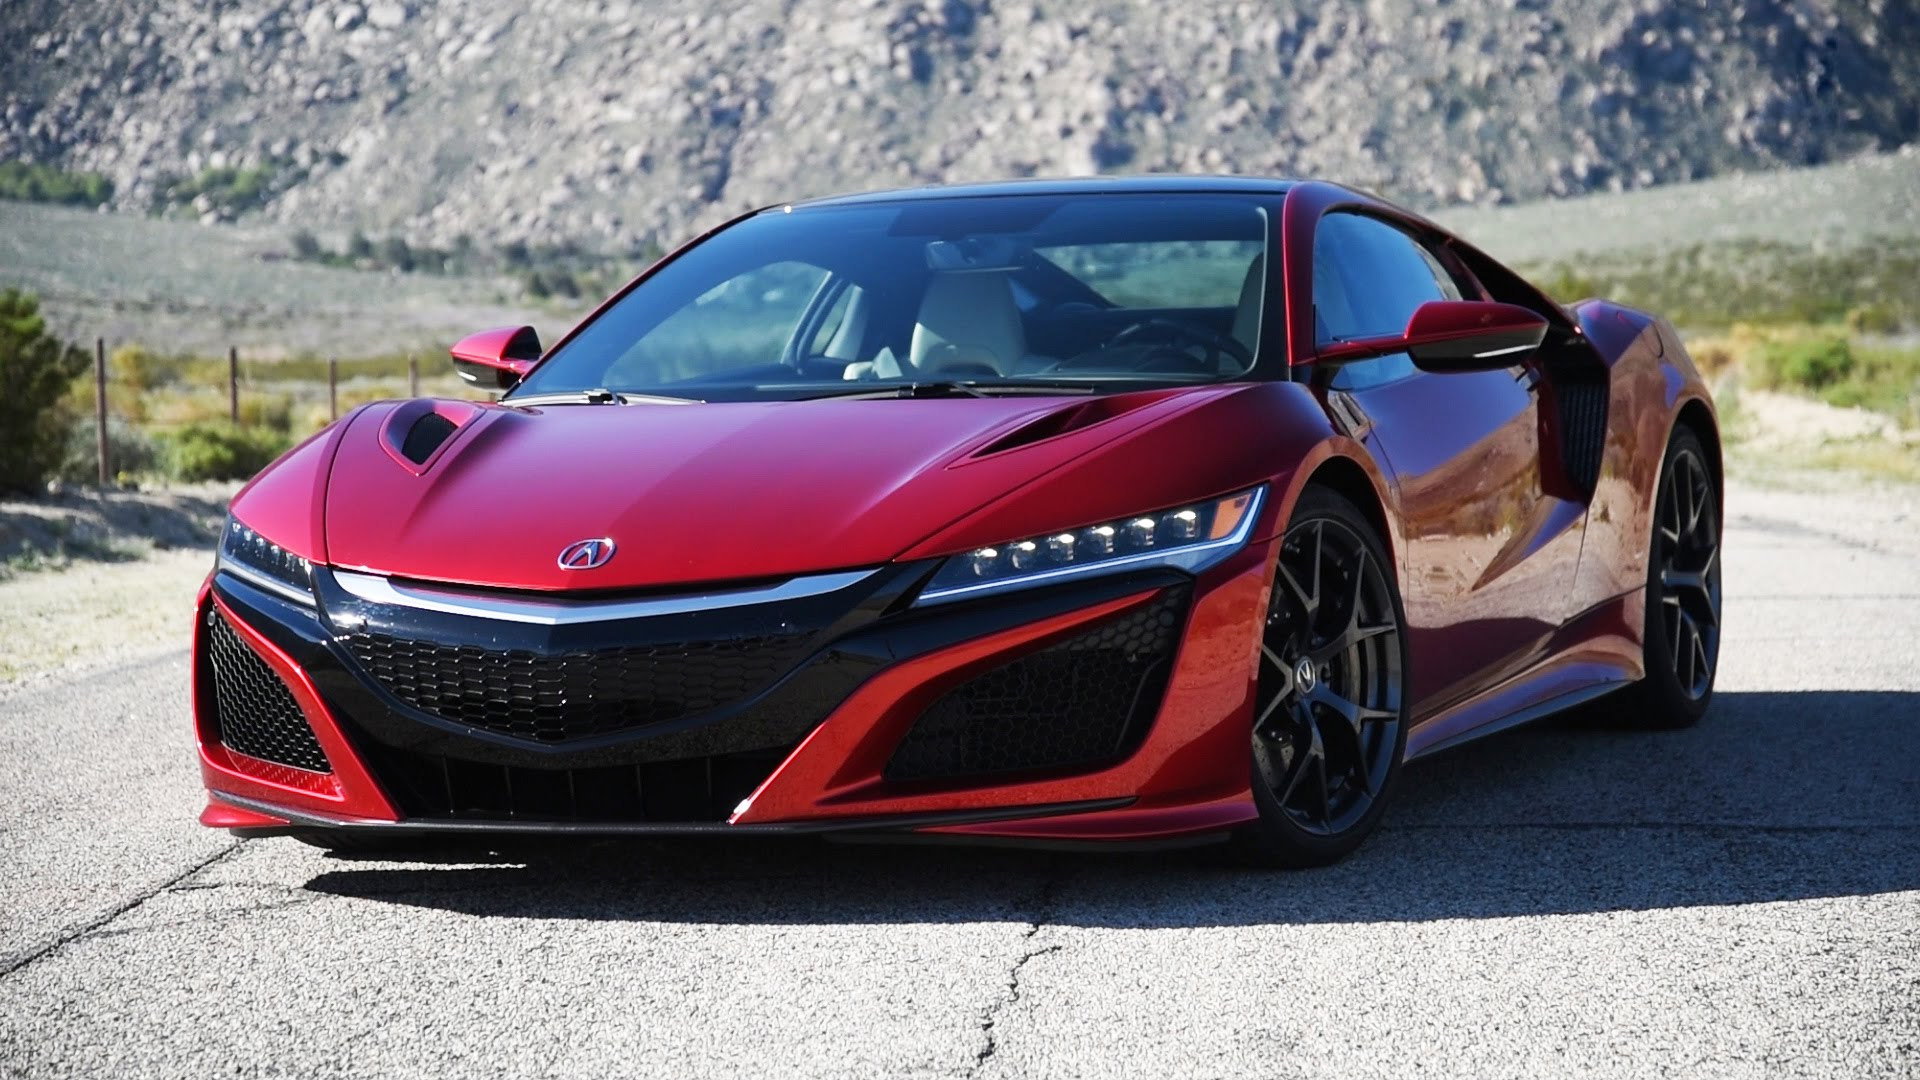 Acura NSX wallpapers, Vehicles, HQ Acura NSX pictures | 4K